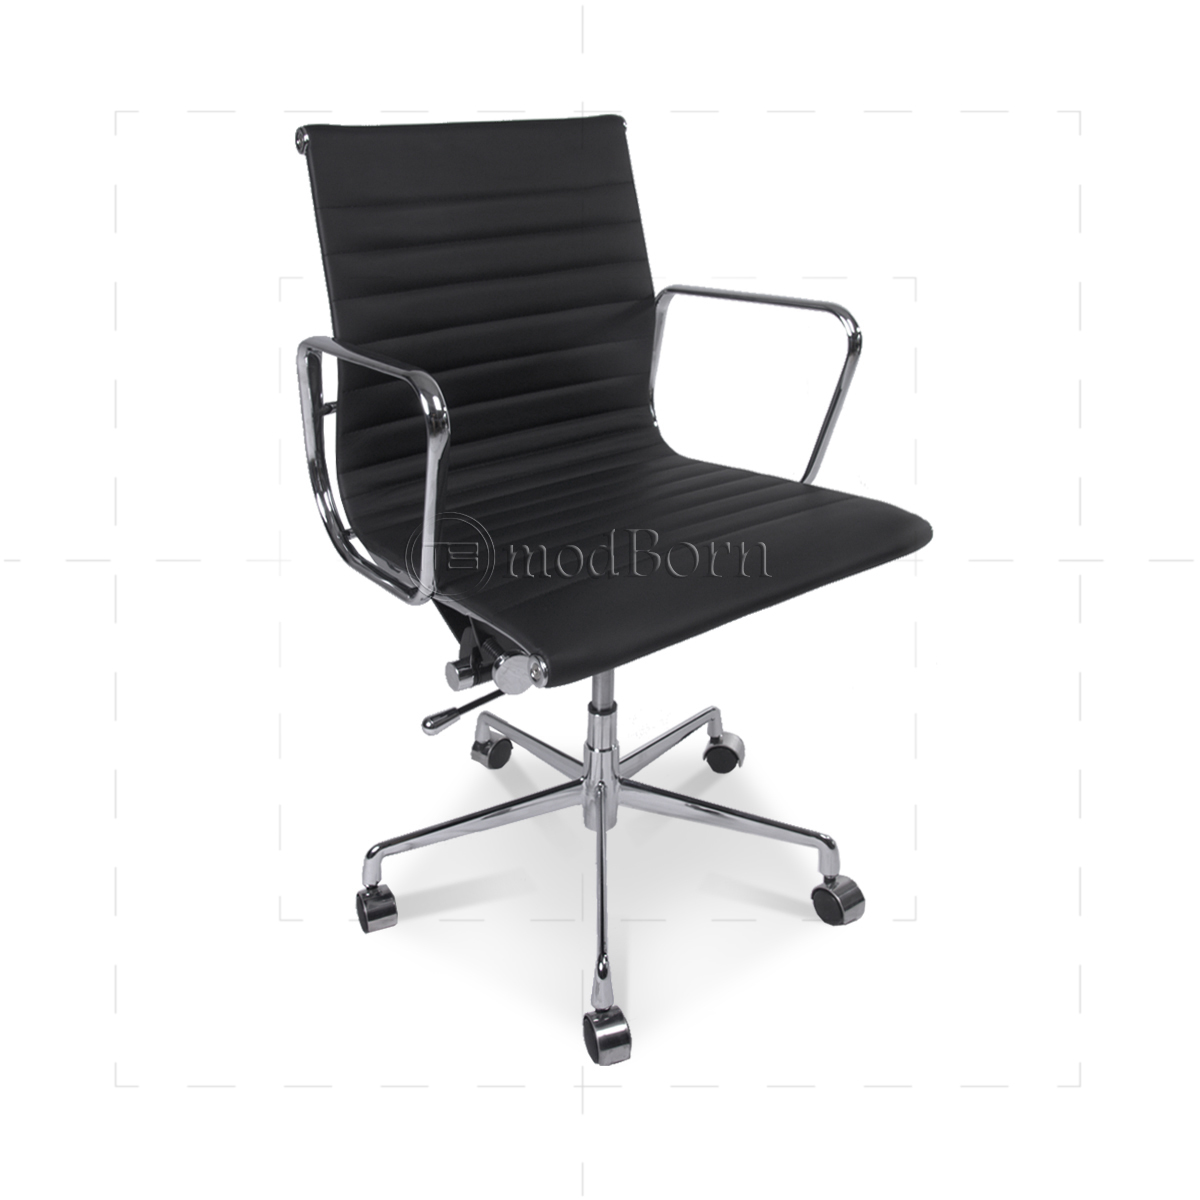 EA117 Eames Style Office Chair Low Back Ribbed Black  : eames office lowback black sideview 1200x1200 from www.modborn.com size 1200 x 1200 jpeg 272kB